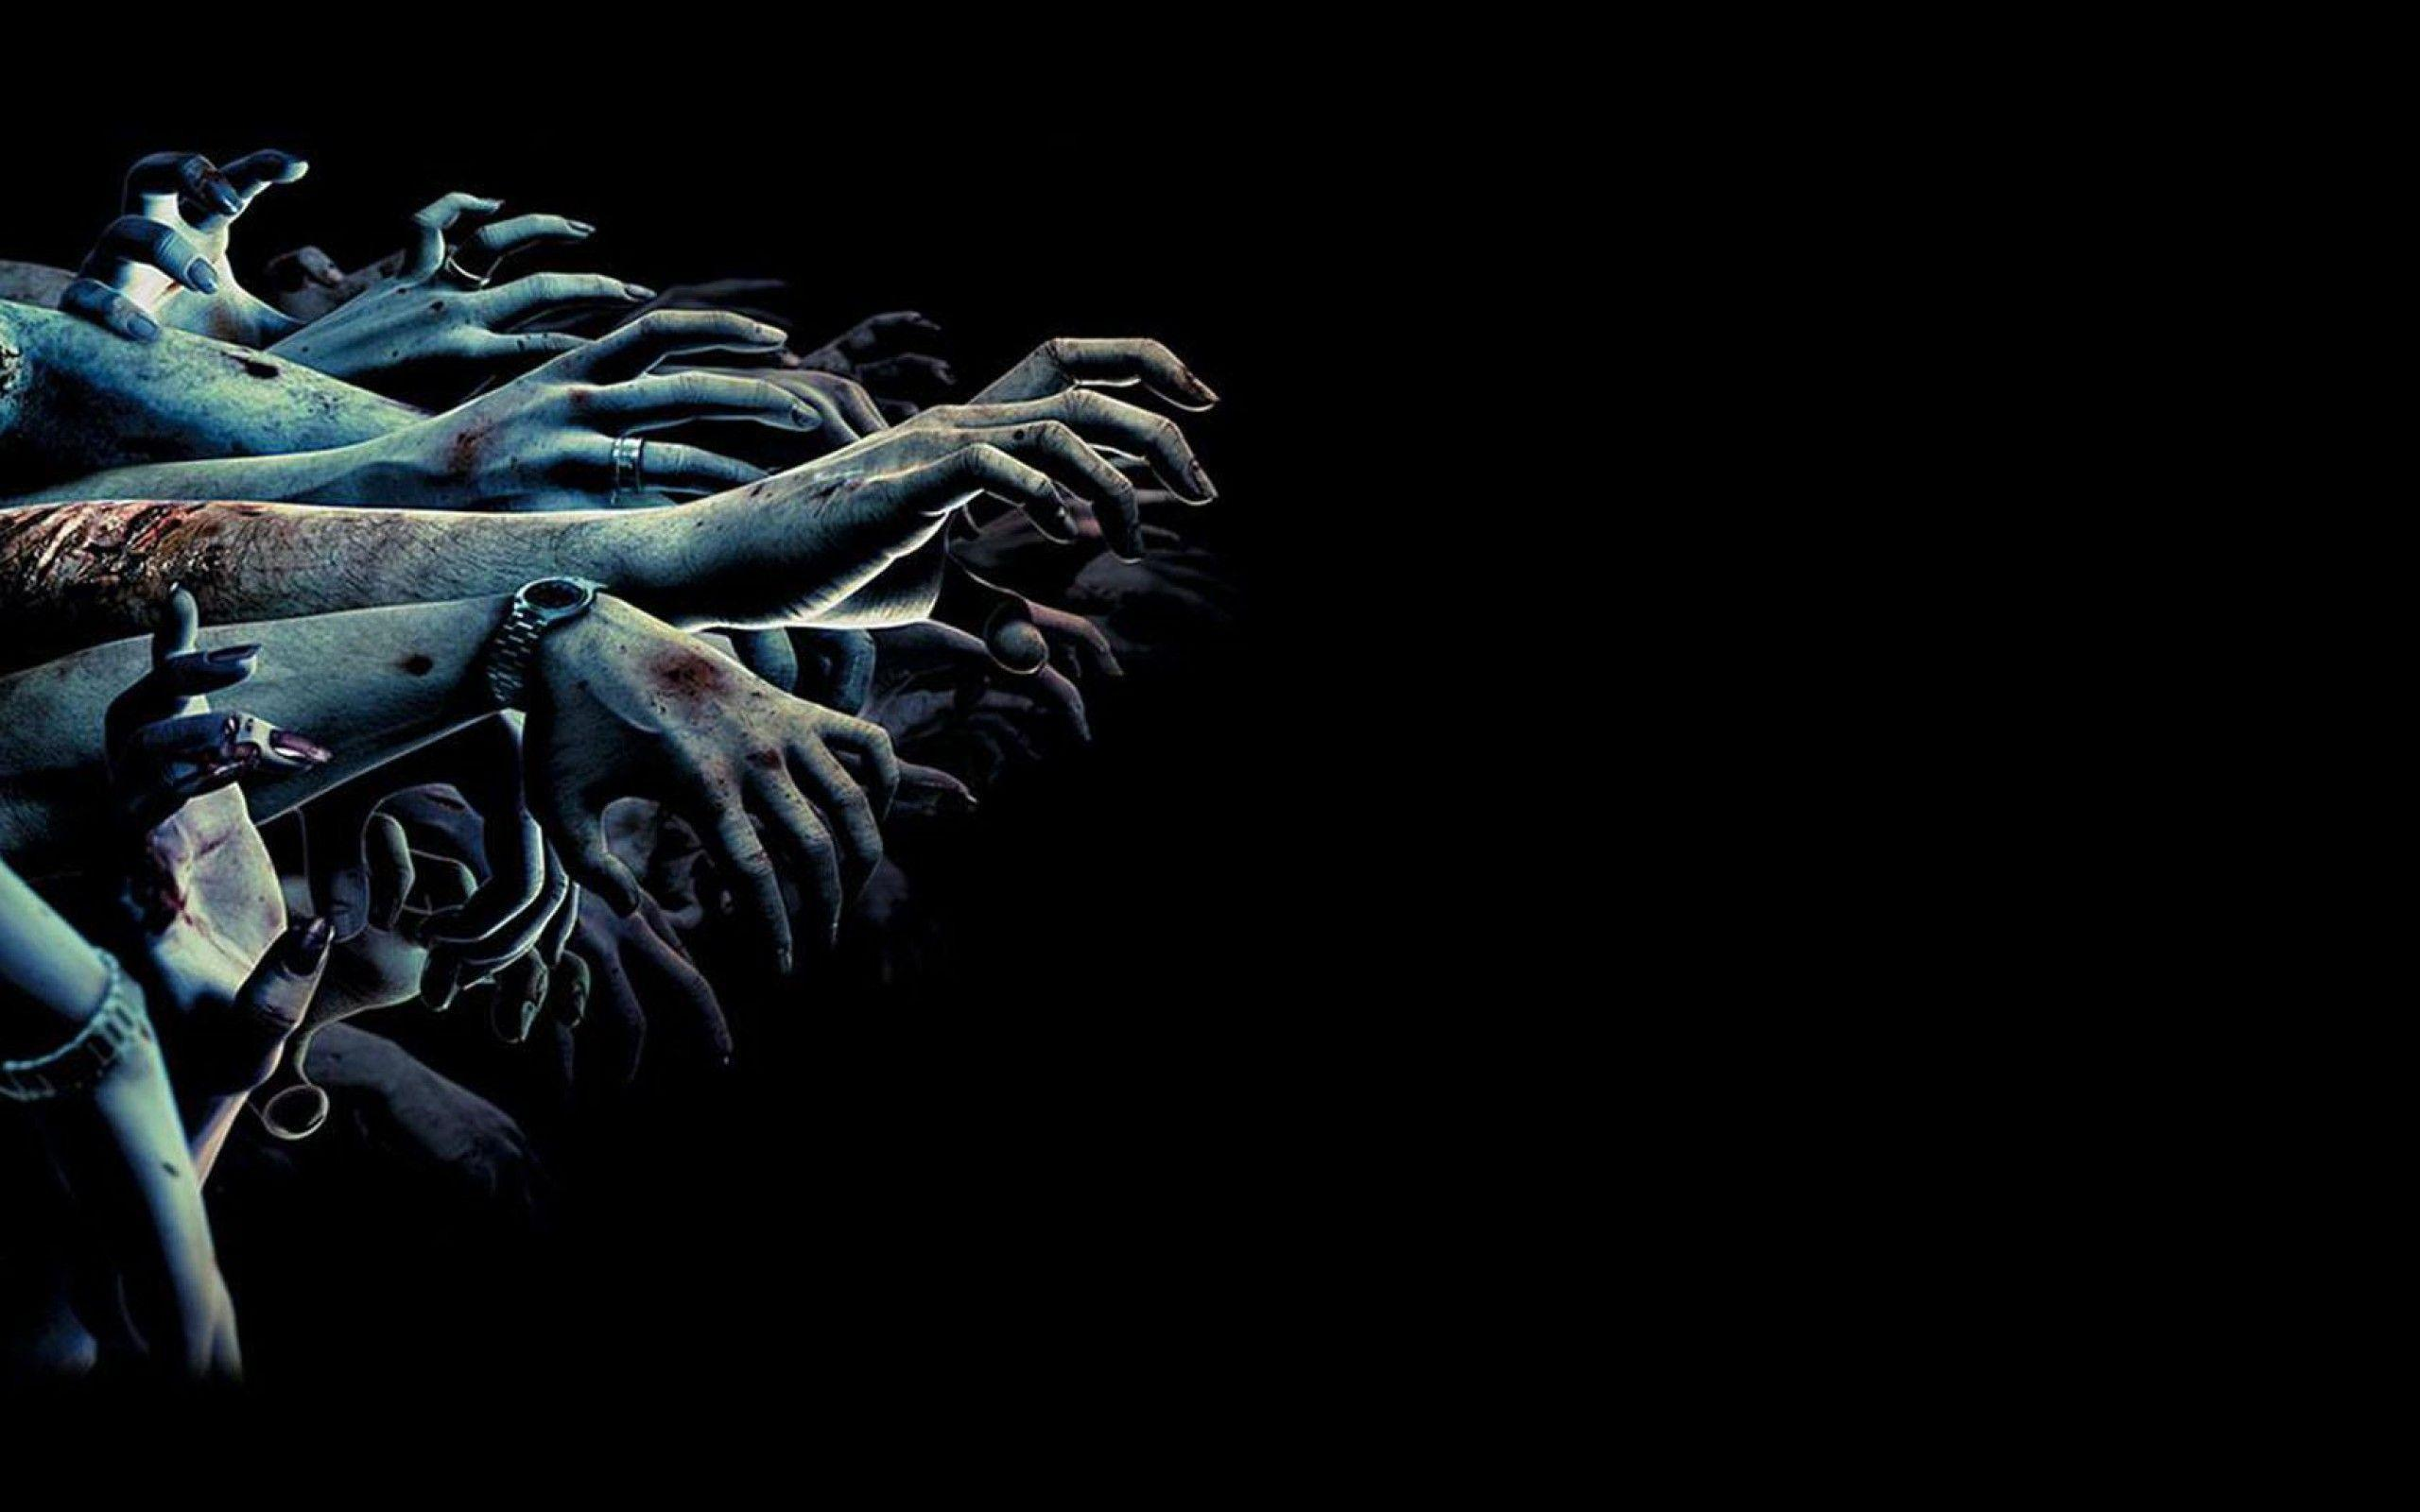 Scary Zombie Wallpapers  Wallpaper Cave